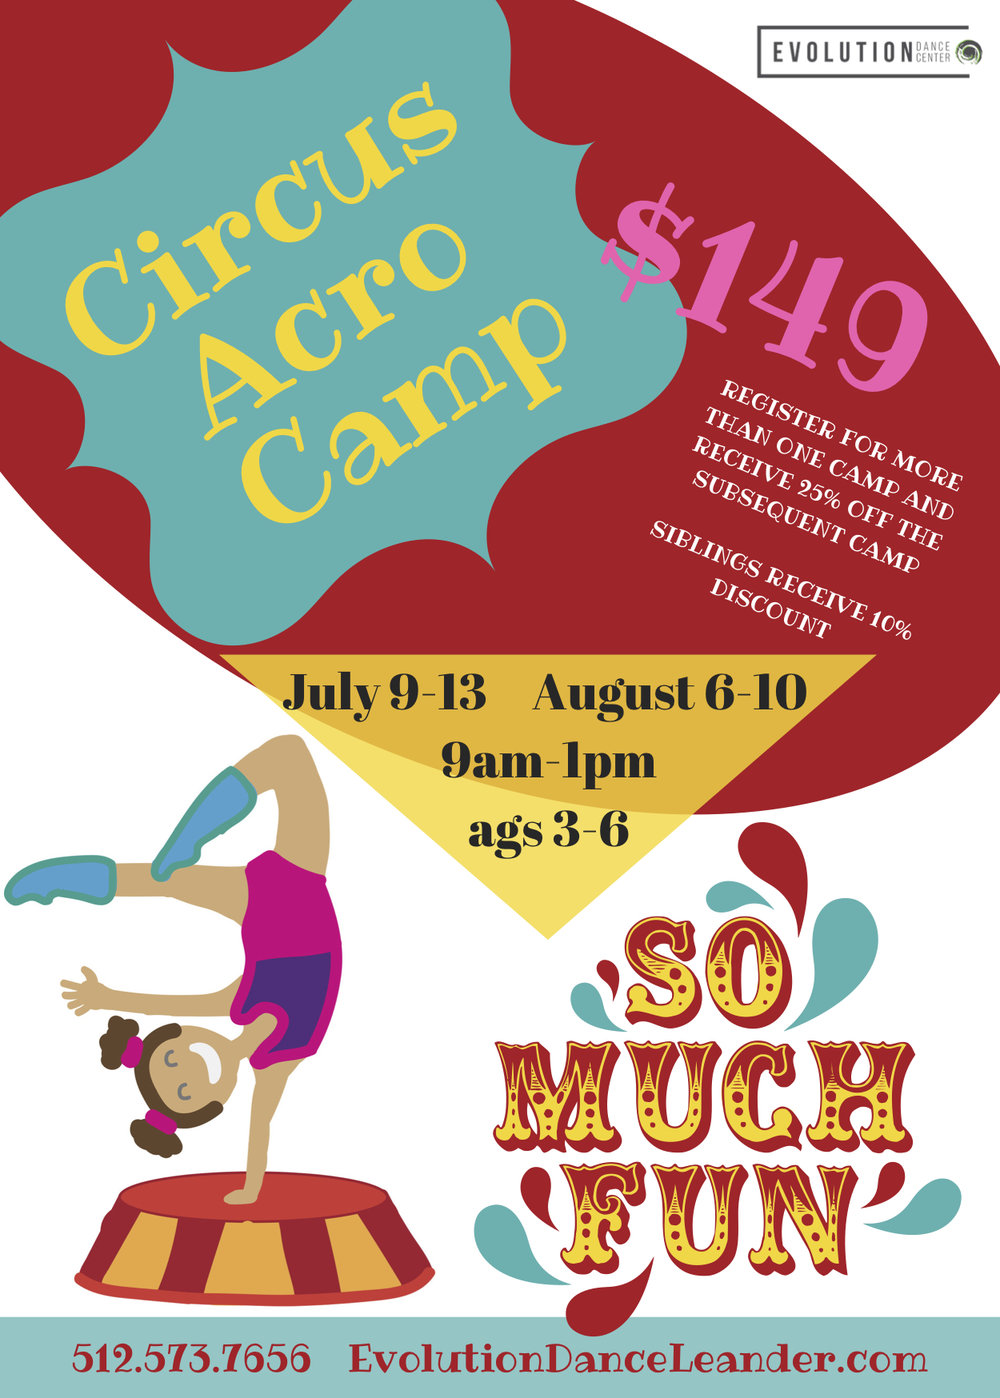 CIRCUS ACRO CAMP - Join the circus for a week! Learn how to balance and make crazy cool shapes and stunts as we stretch our minds and bodies in this super fun interactive camp! Clown attire is optional! Ages 3-6